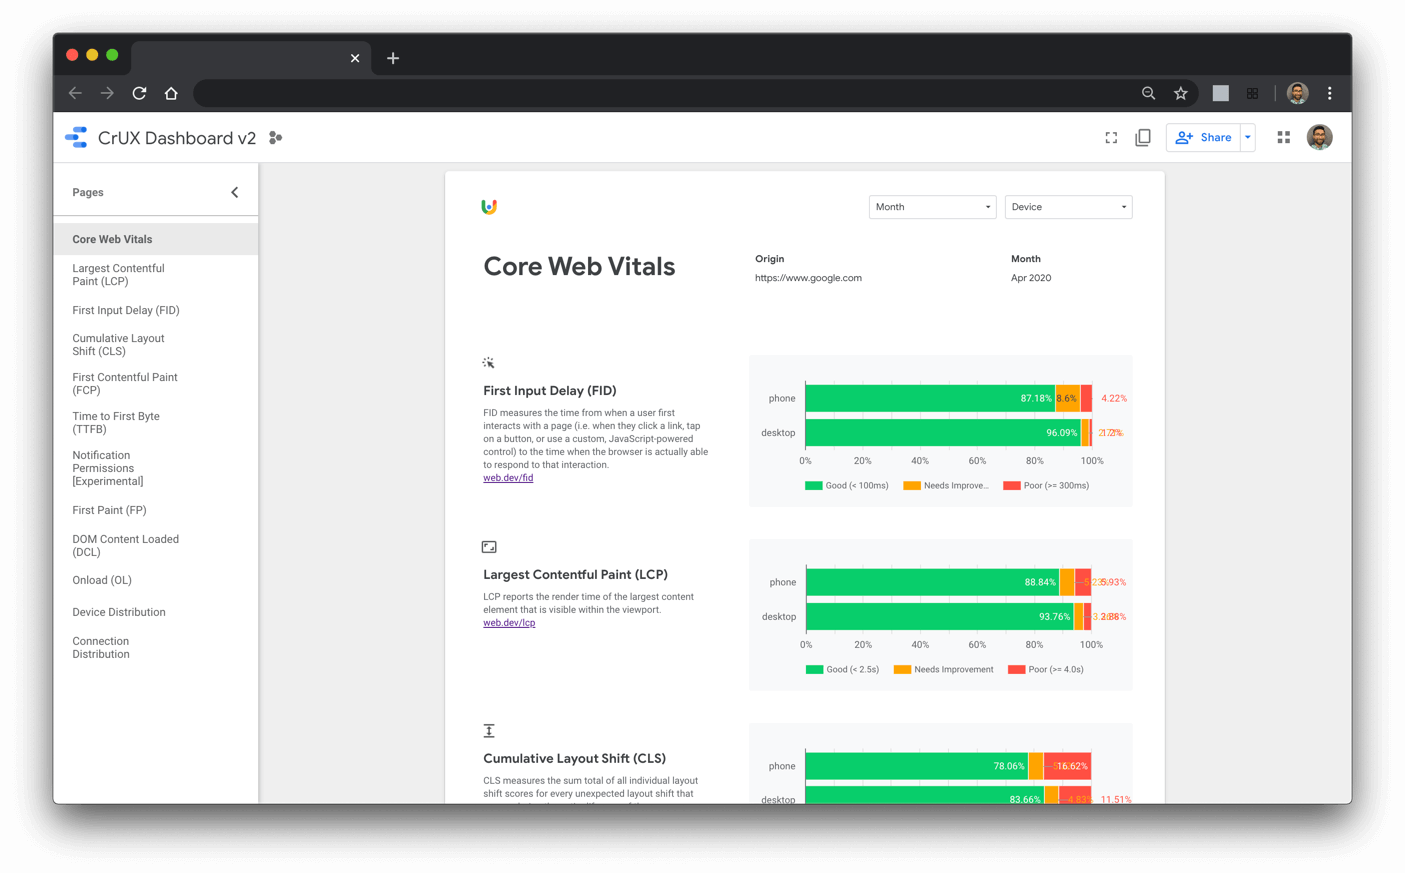 Chrome UX Report dashboard displaying the Core Web Vitals metrics in a new landing page